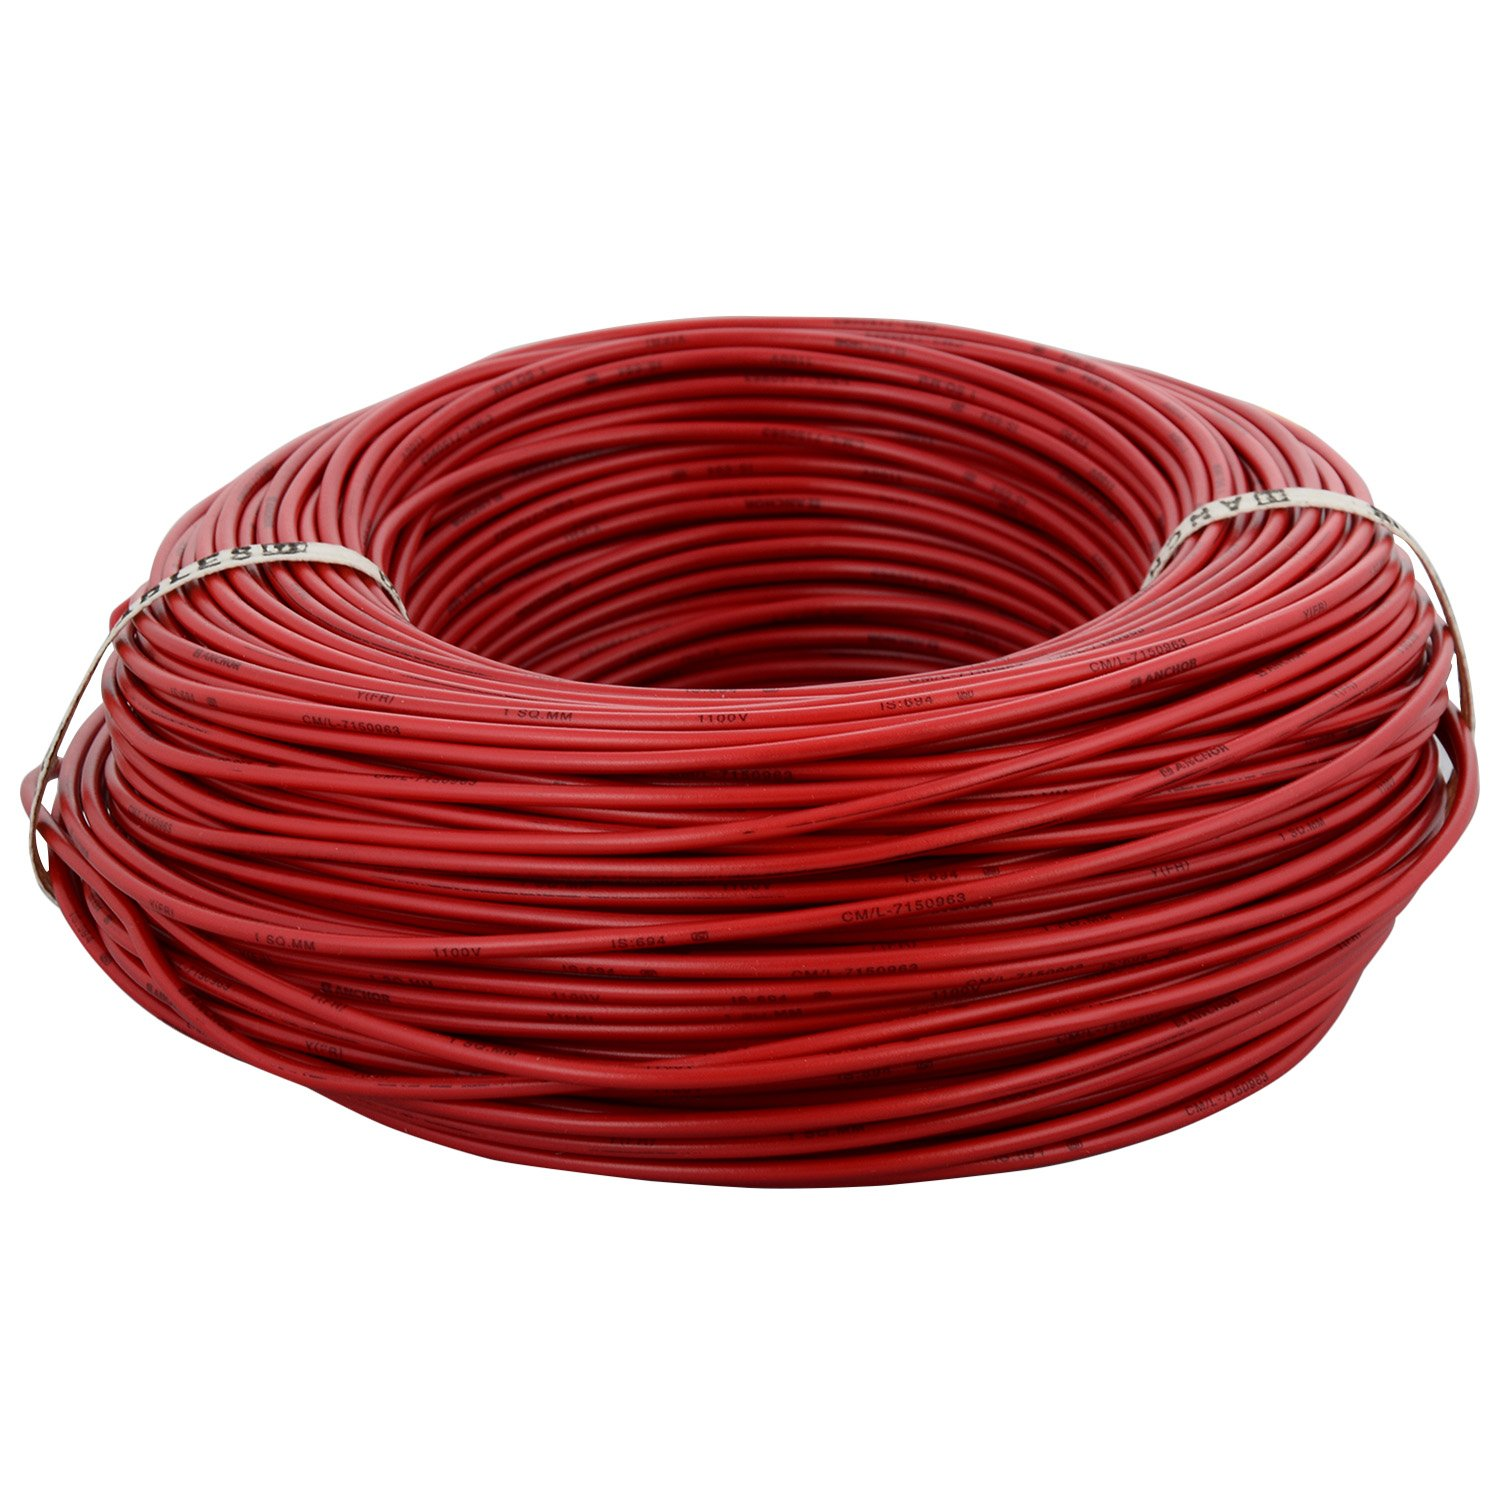 Anchor Insulated Copper Pvc Cable 10 Sq Mm Wire Red European Industrial Wiring Color Code Chart Free Download